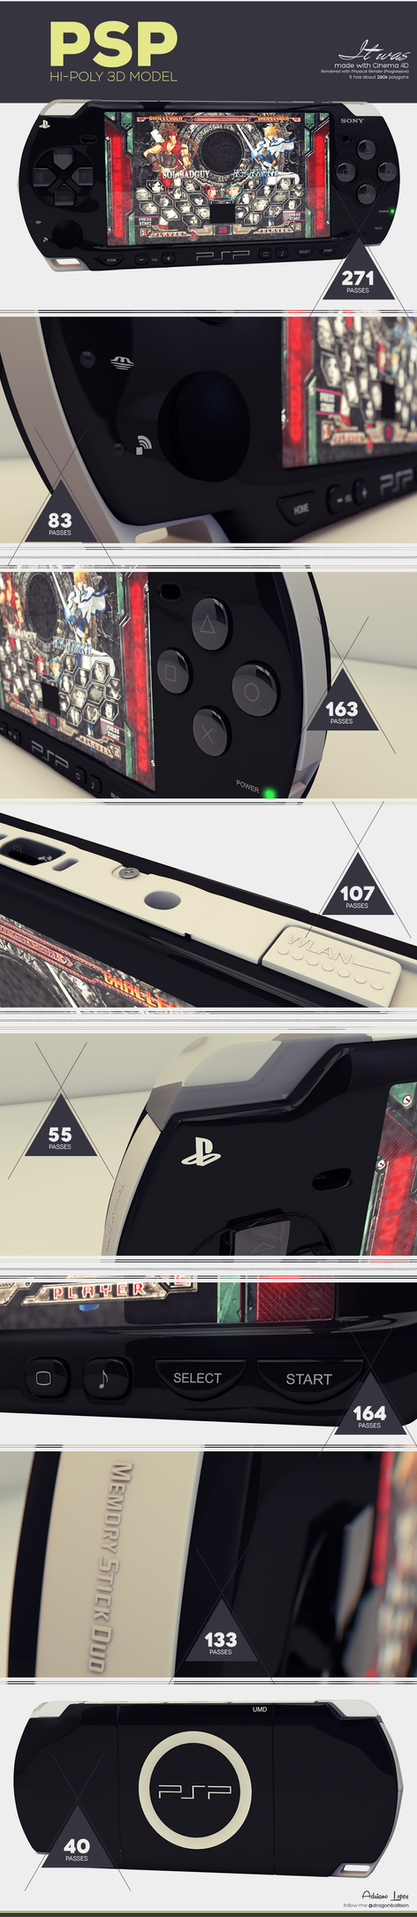 PSP 3D model by dragonballson